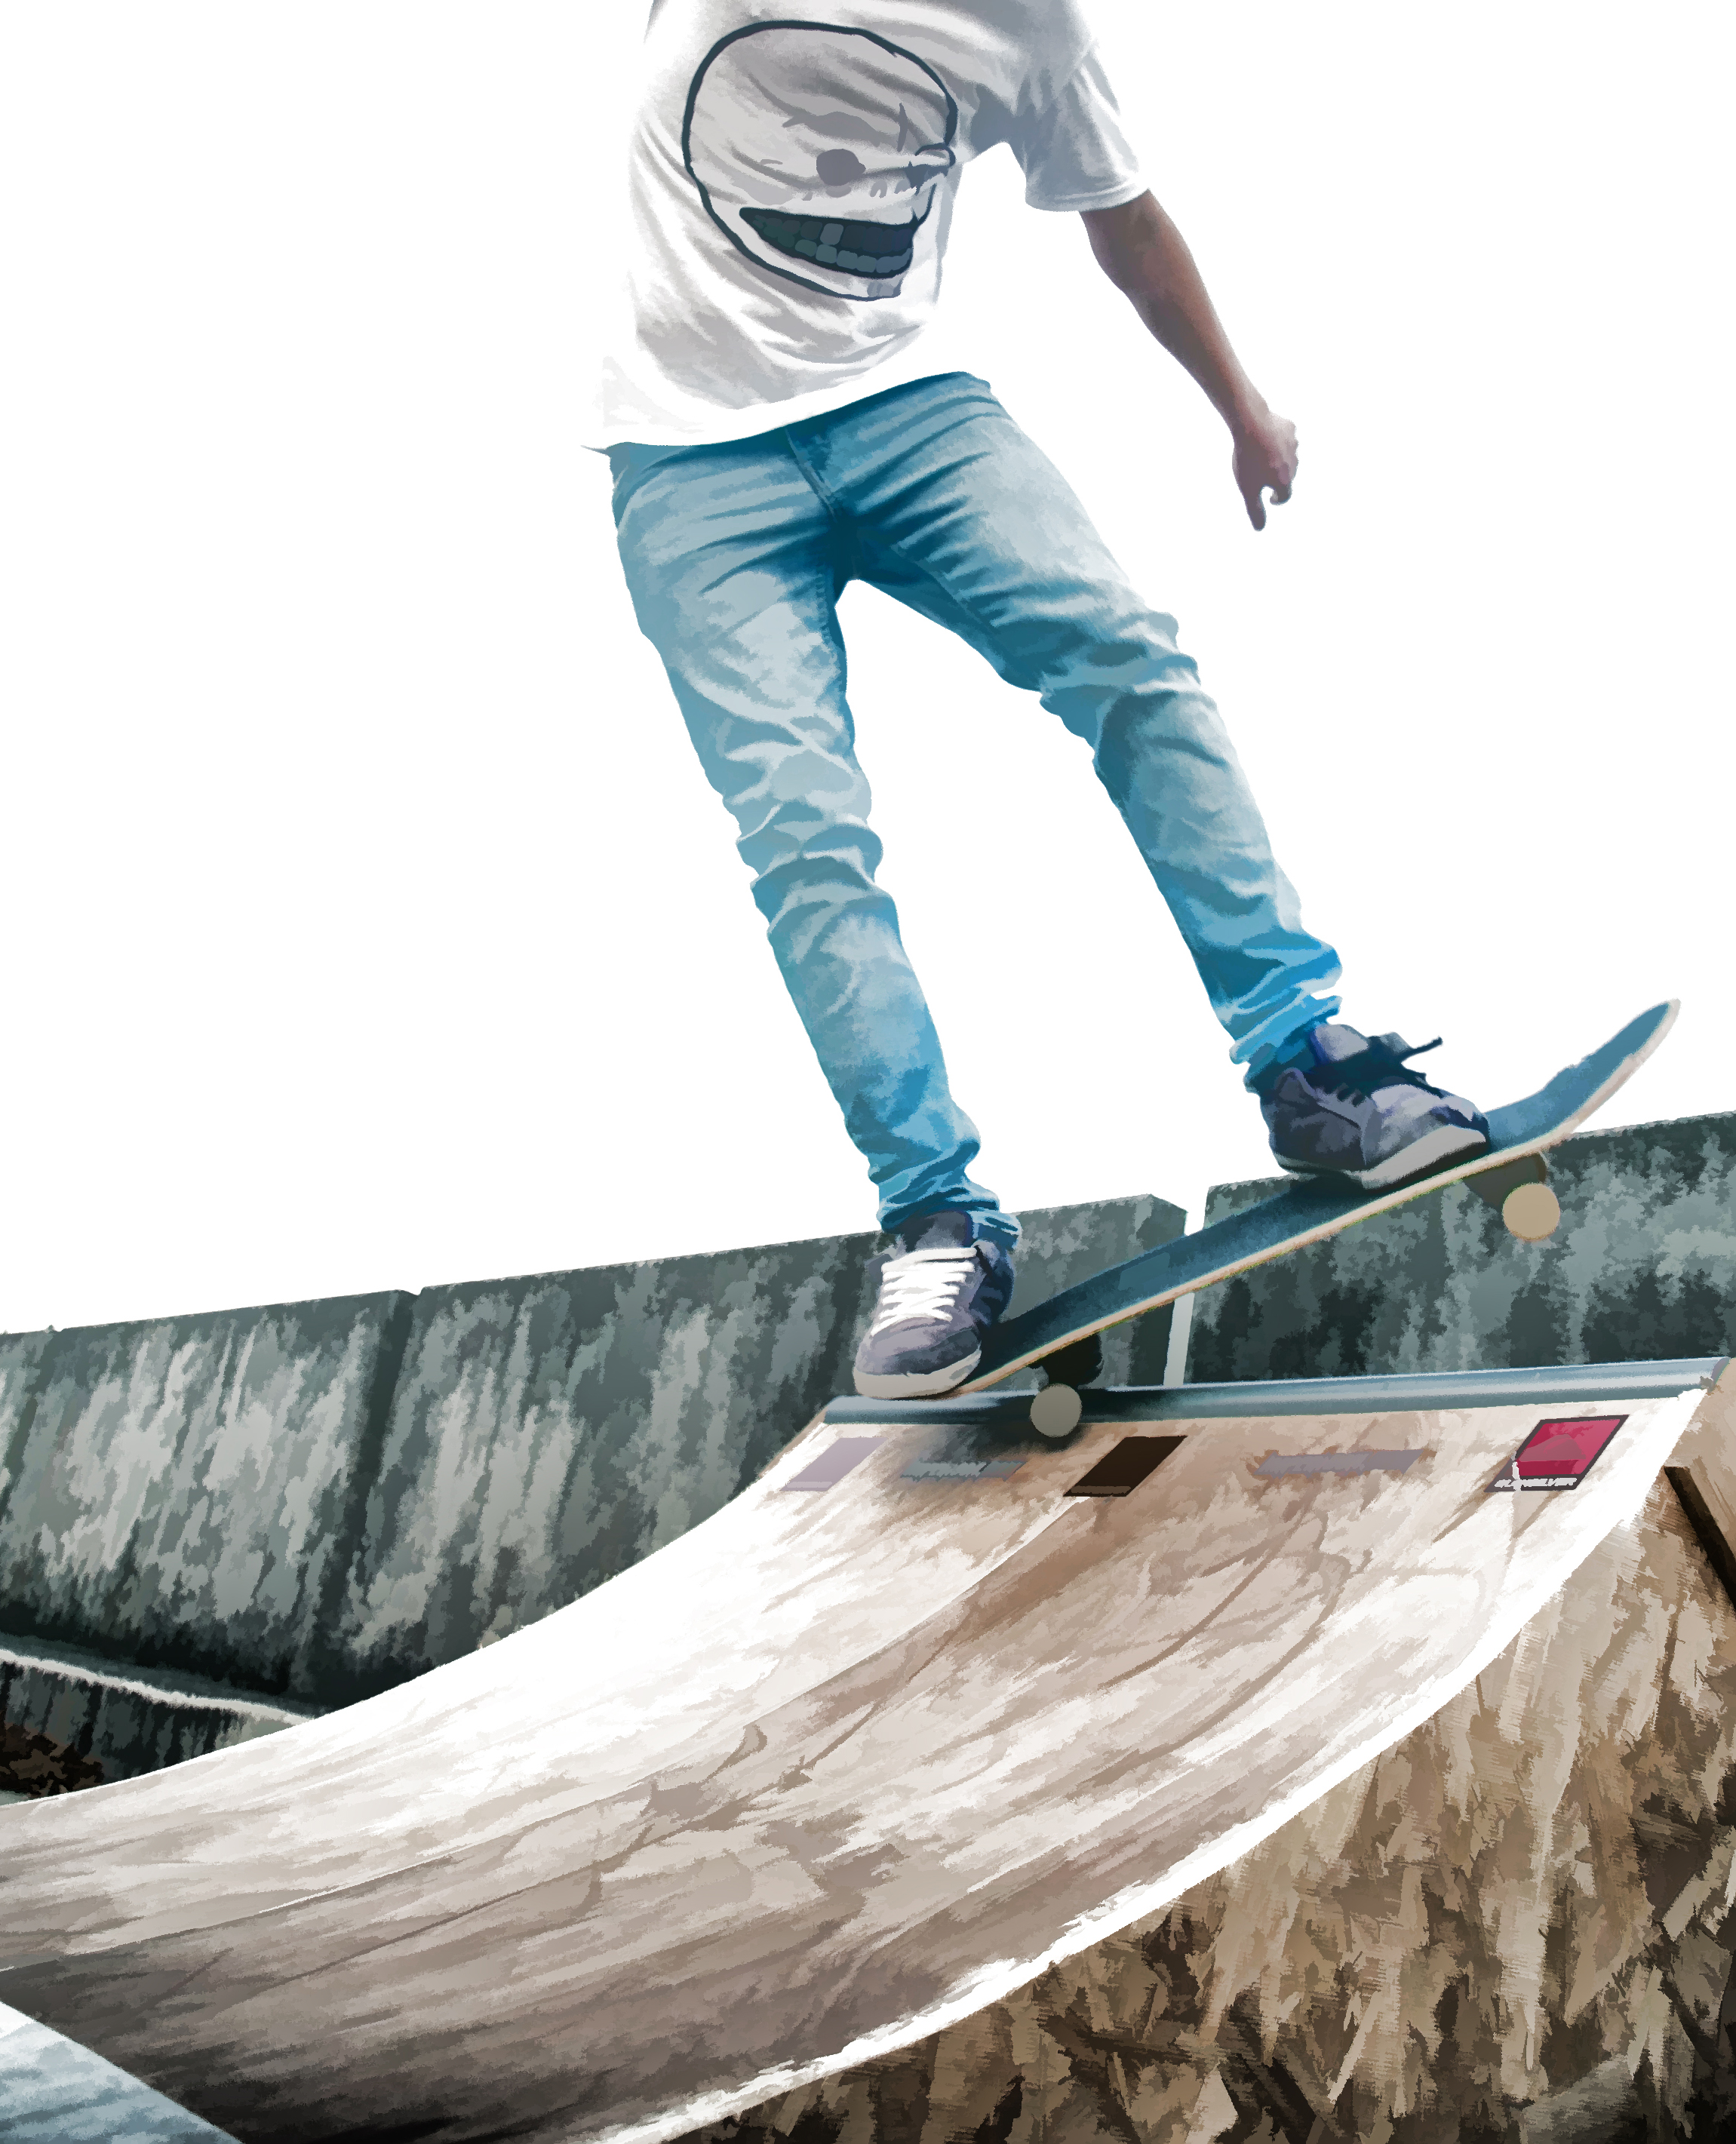 Skateboard Live Wallpaper: Skate #5 By Pname On DeviantArt